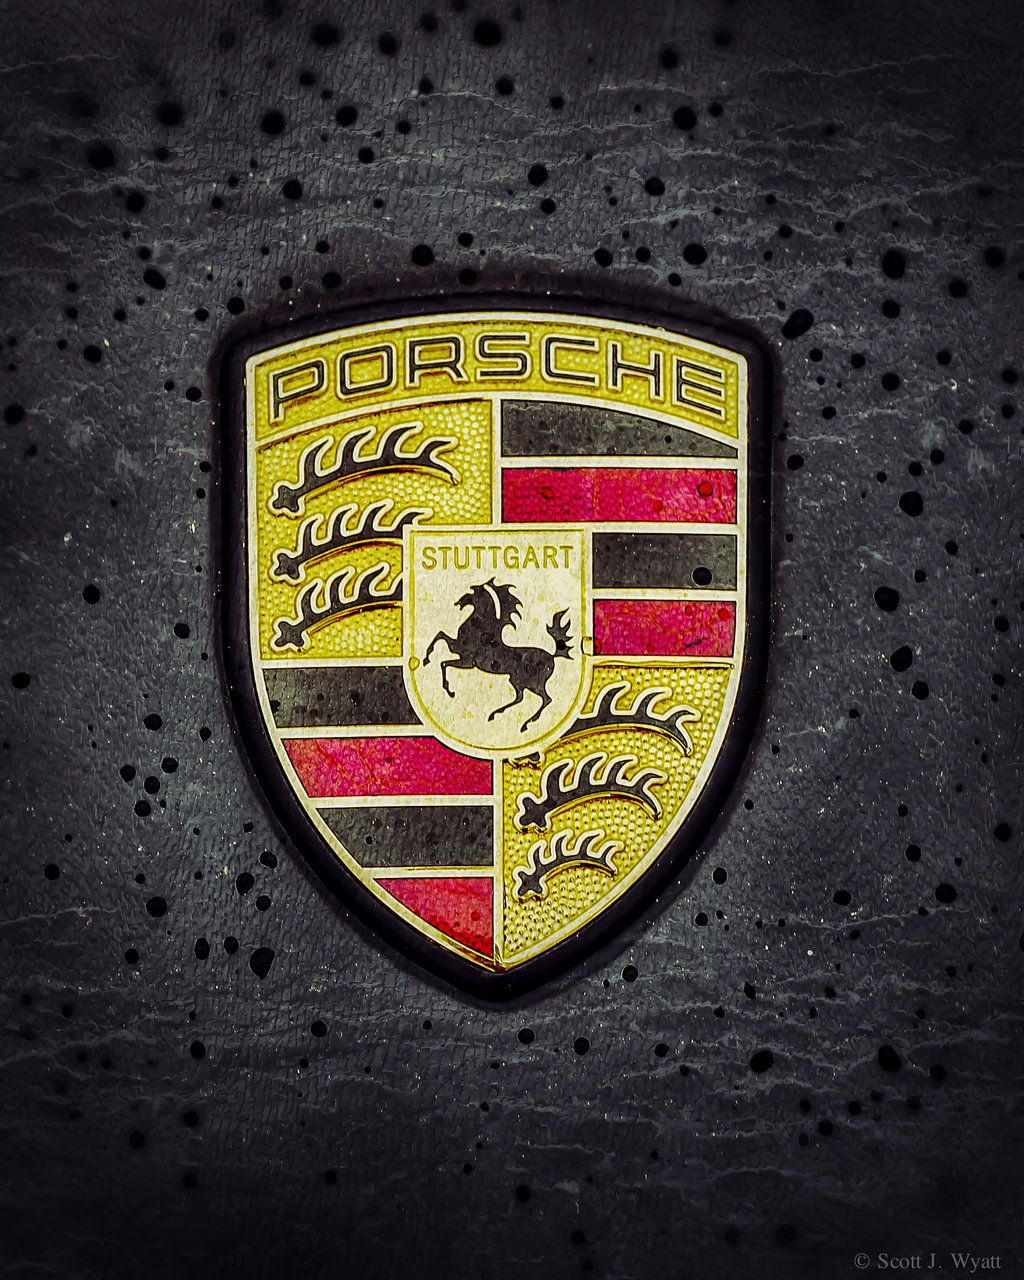 Porsche Logo Wallpapers For Android On Wallpaper 1080p HD